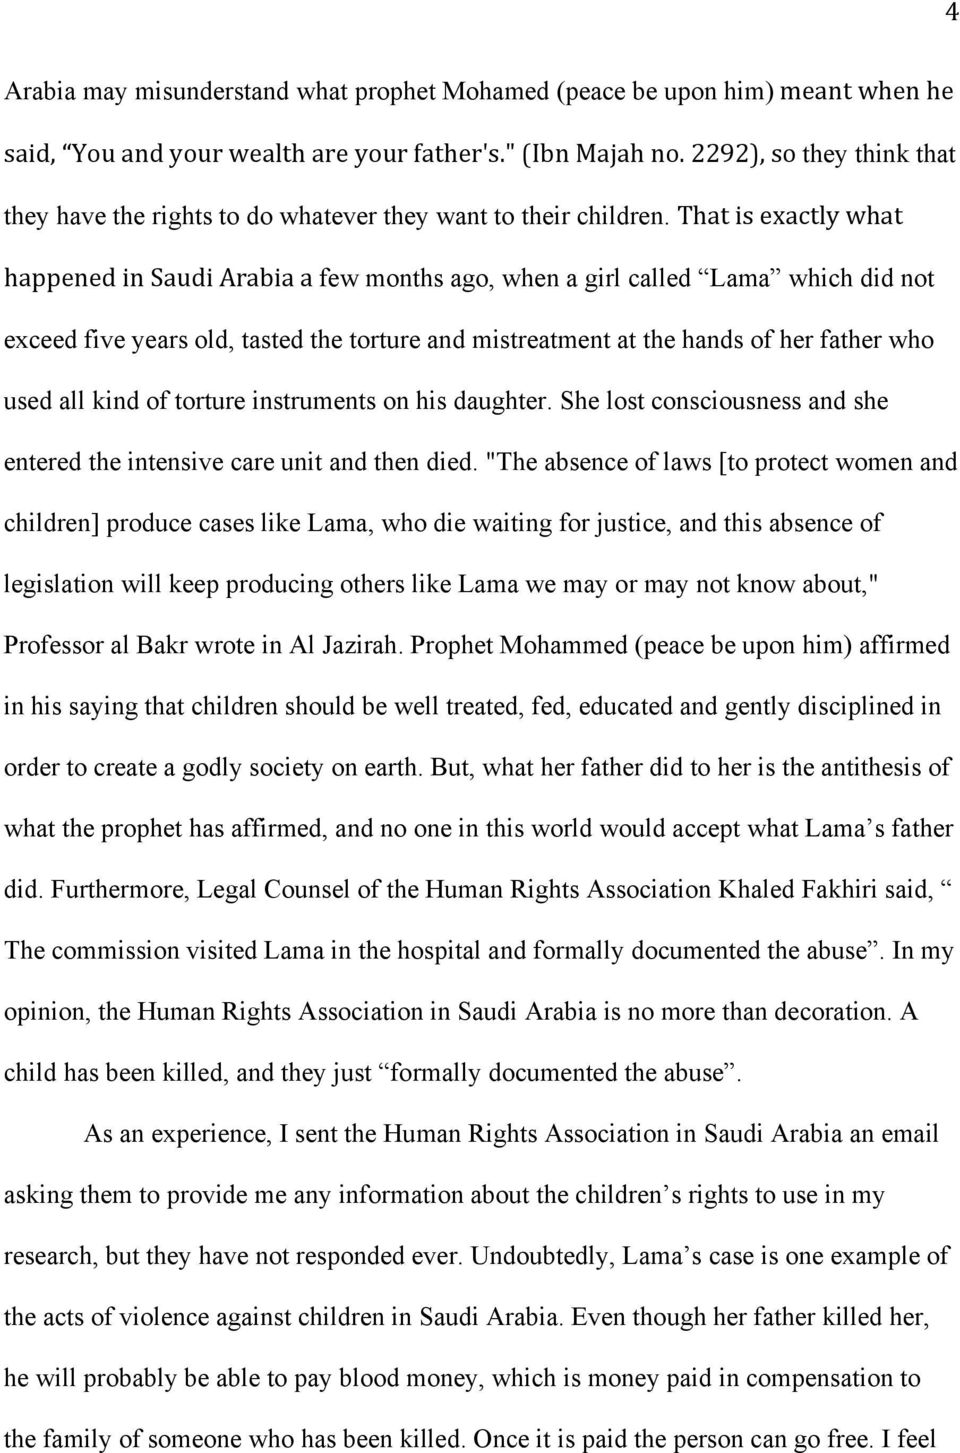 That is exactly what happened in Saudi Arabia a few months ago, when a girl called Lama which did not exceed five years old, tasted the torture and mistreatment at the hands of her father who used